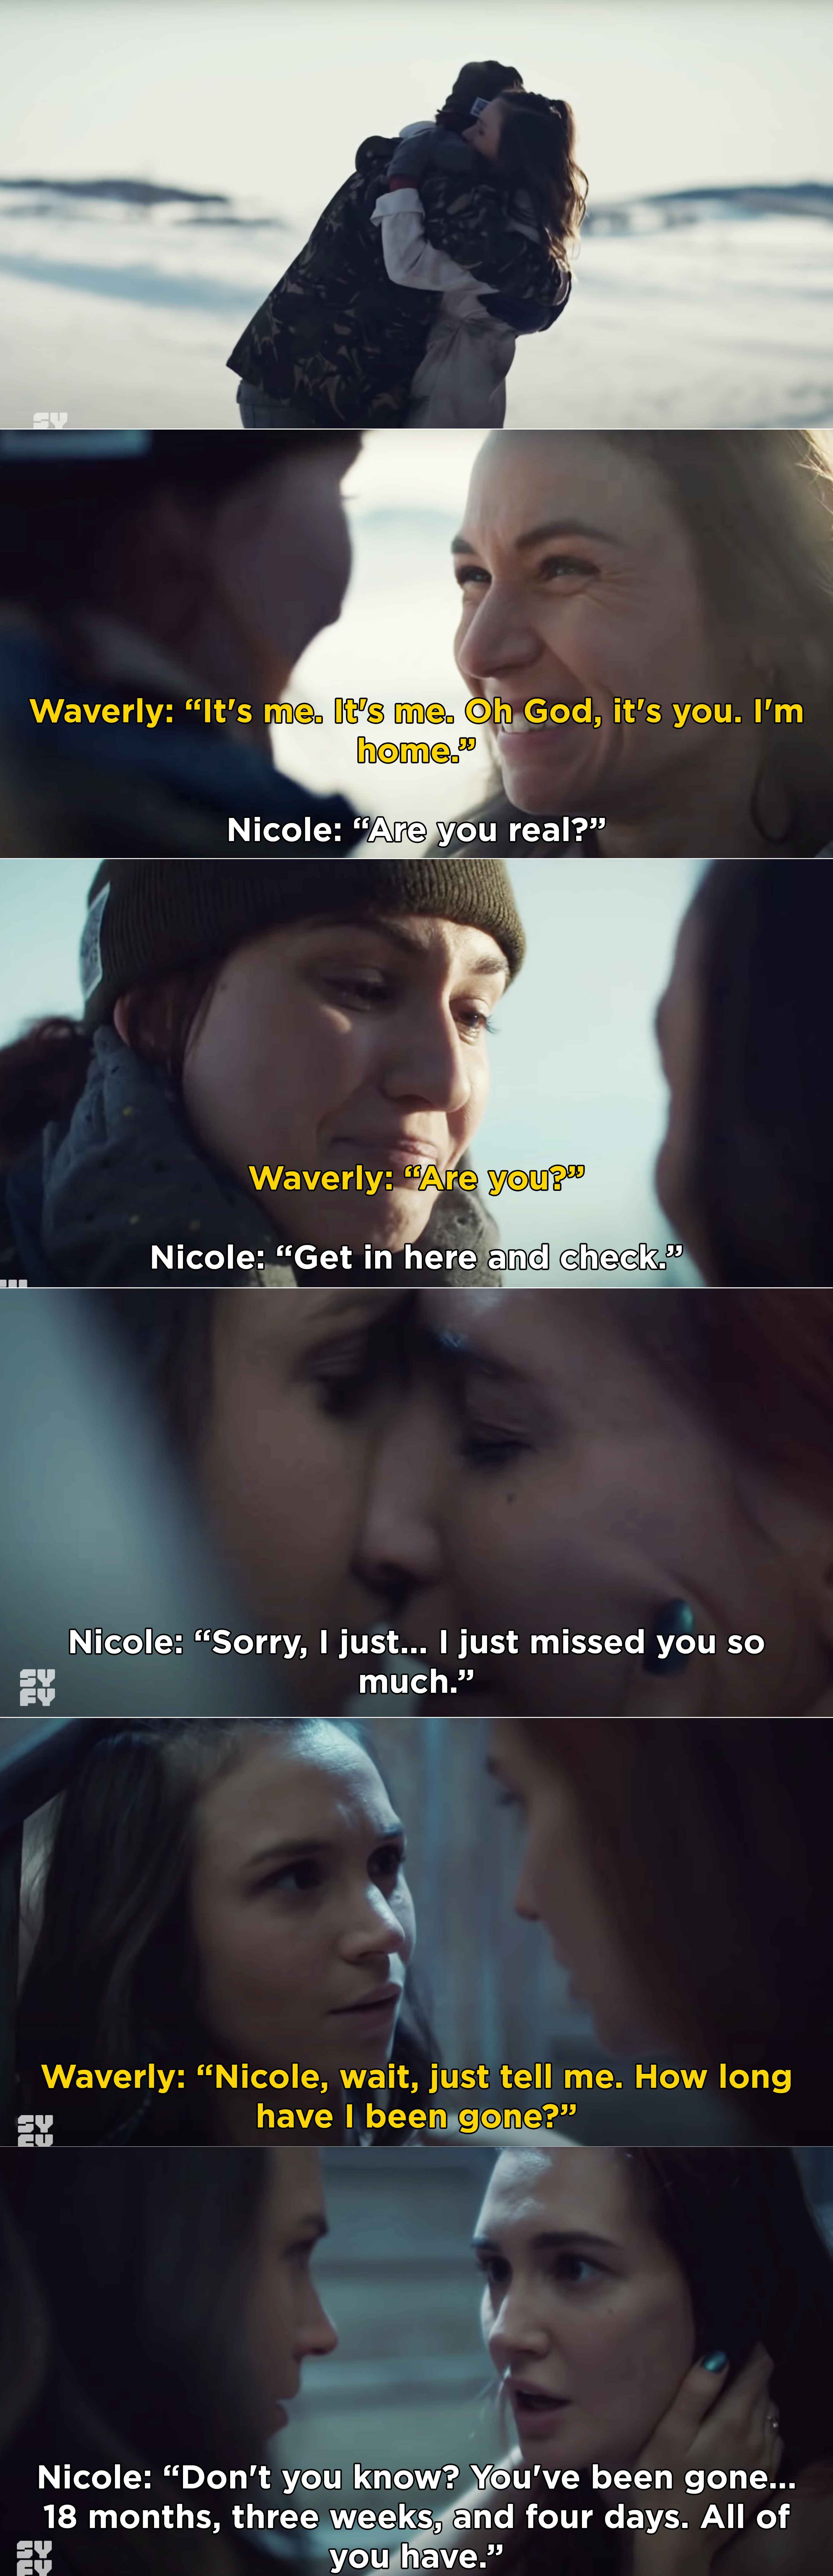 "Nicole telling Waverly, ""Don't you know? You've been gone... 18 months, three weeks, and four days. All of you have"""